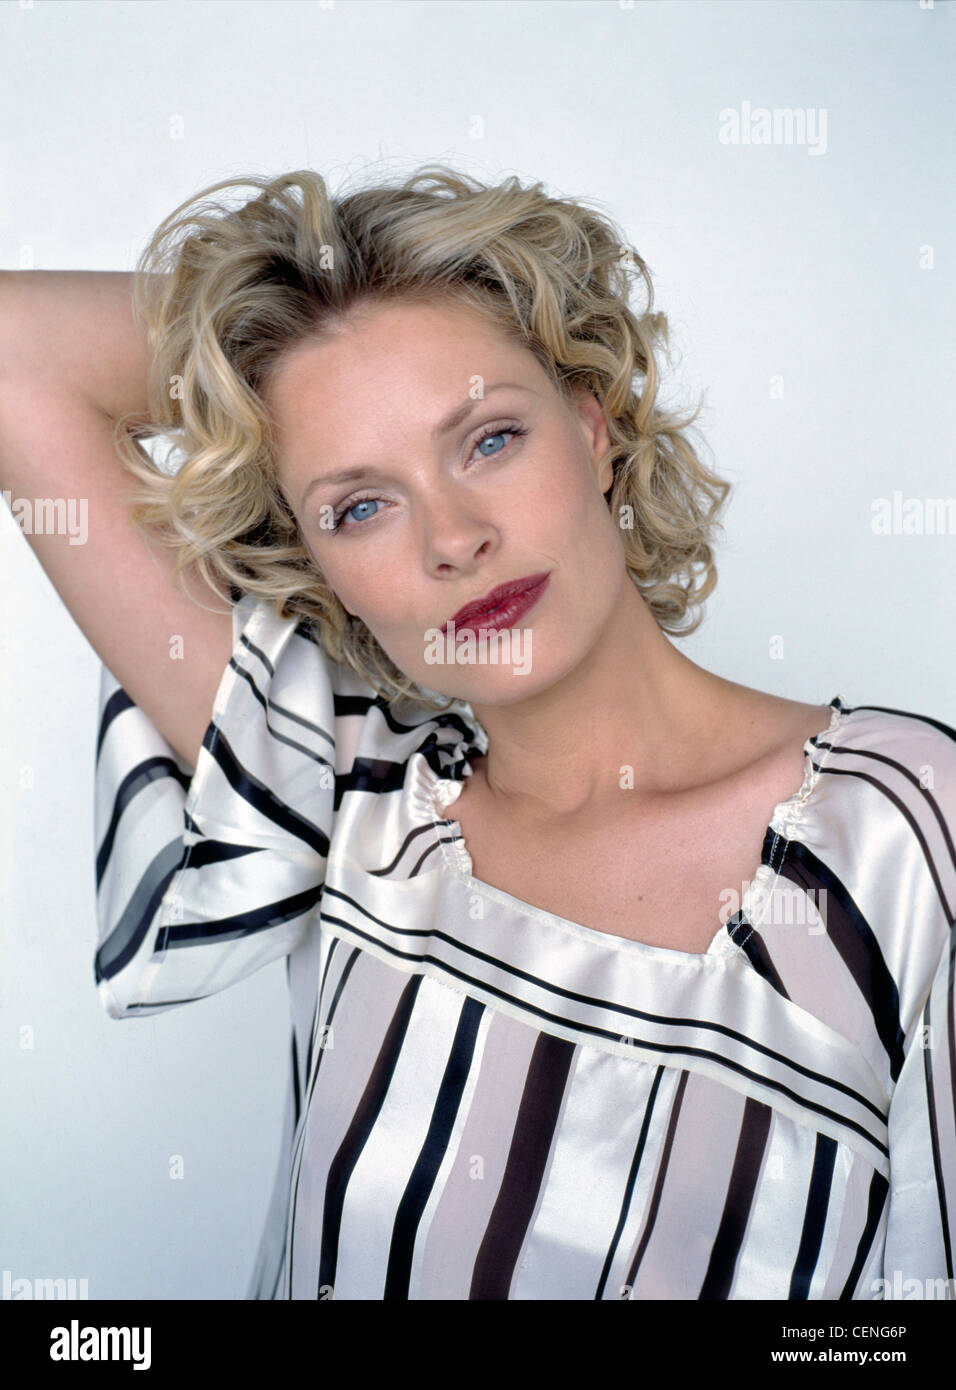 Hair Colours Female Short Curly Blonde Hair And Dark Red Lipstick Stock Photo Alamy